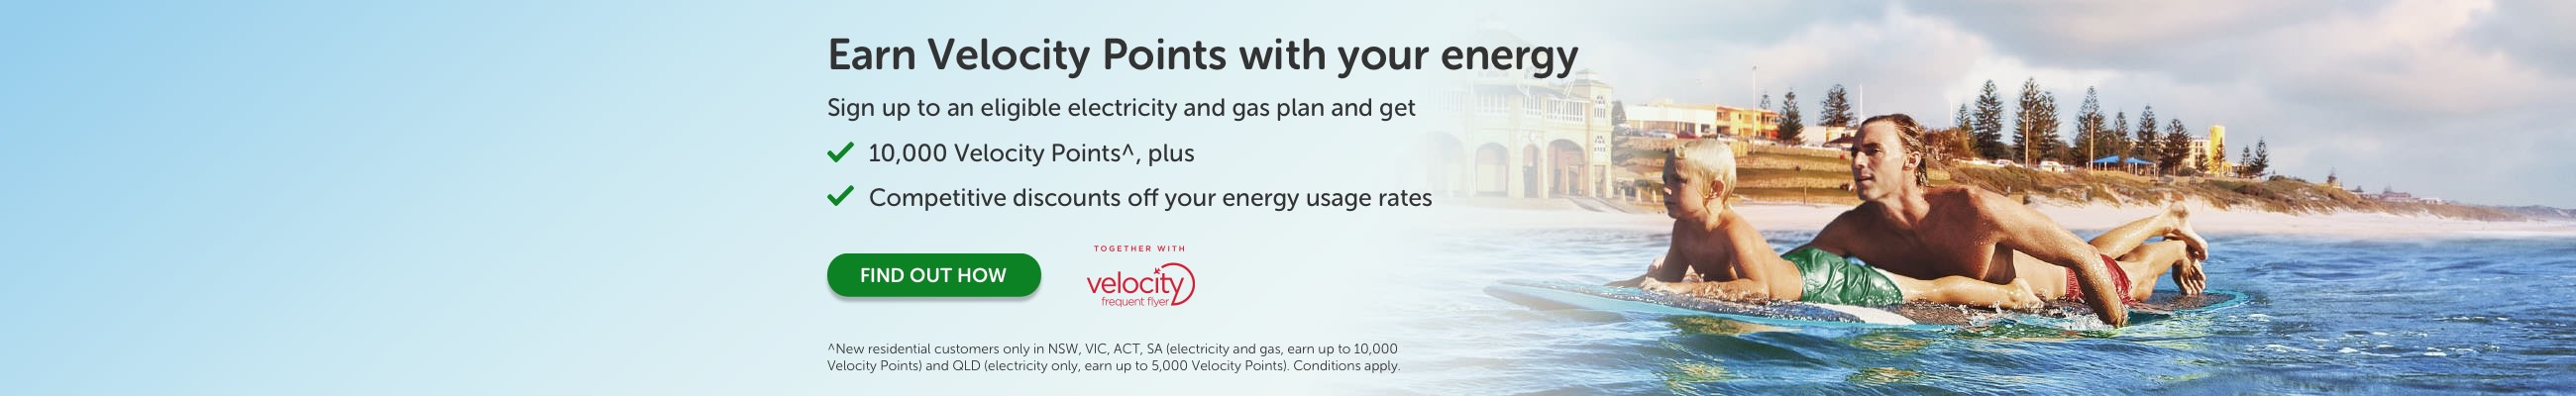 Earn Velocity points with your energy